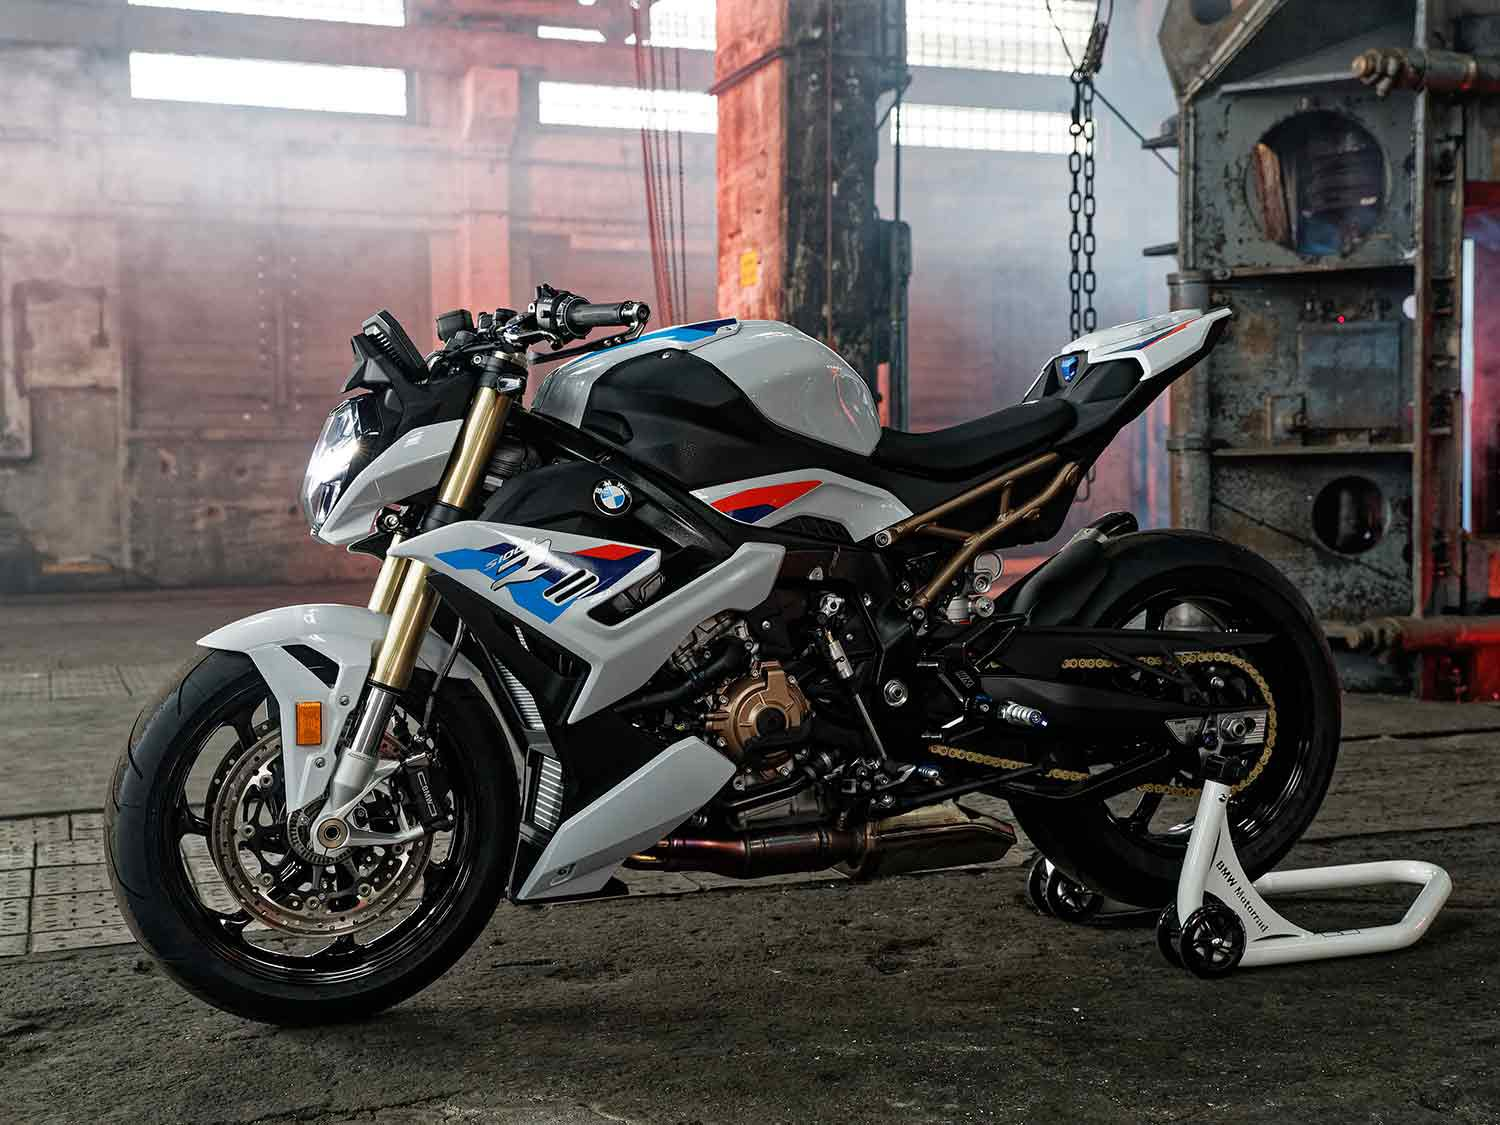 Riders will be seated in a more aggressive position than before on the new S 1000 R.